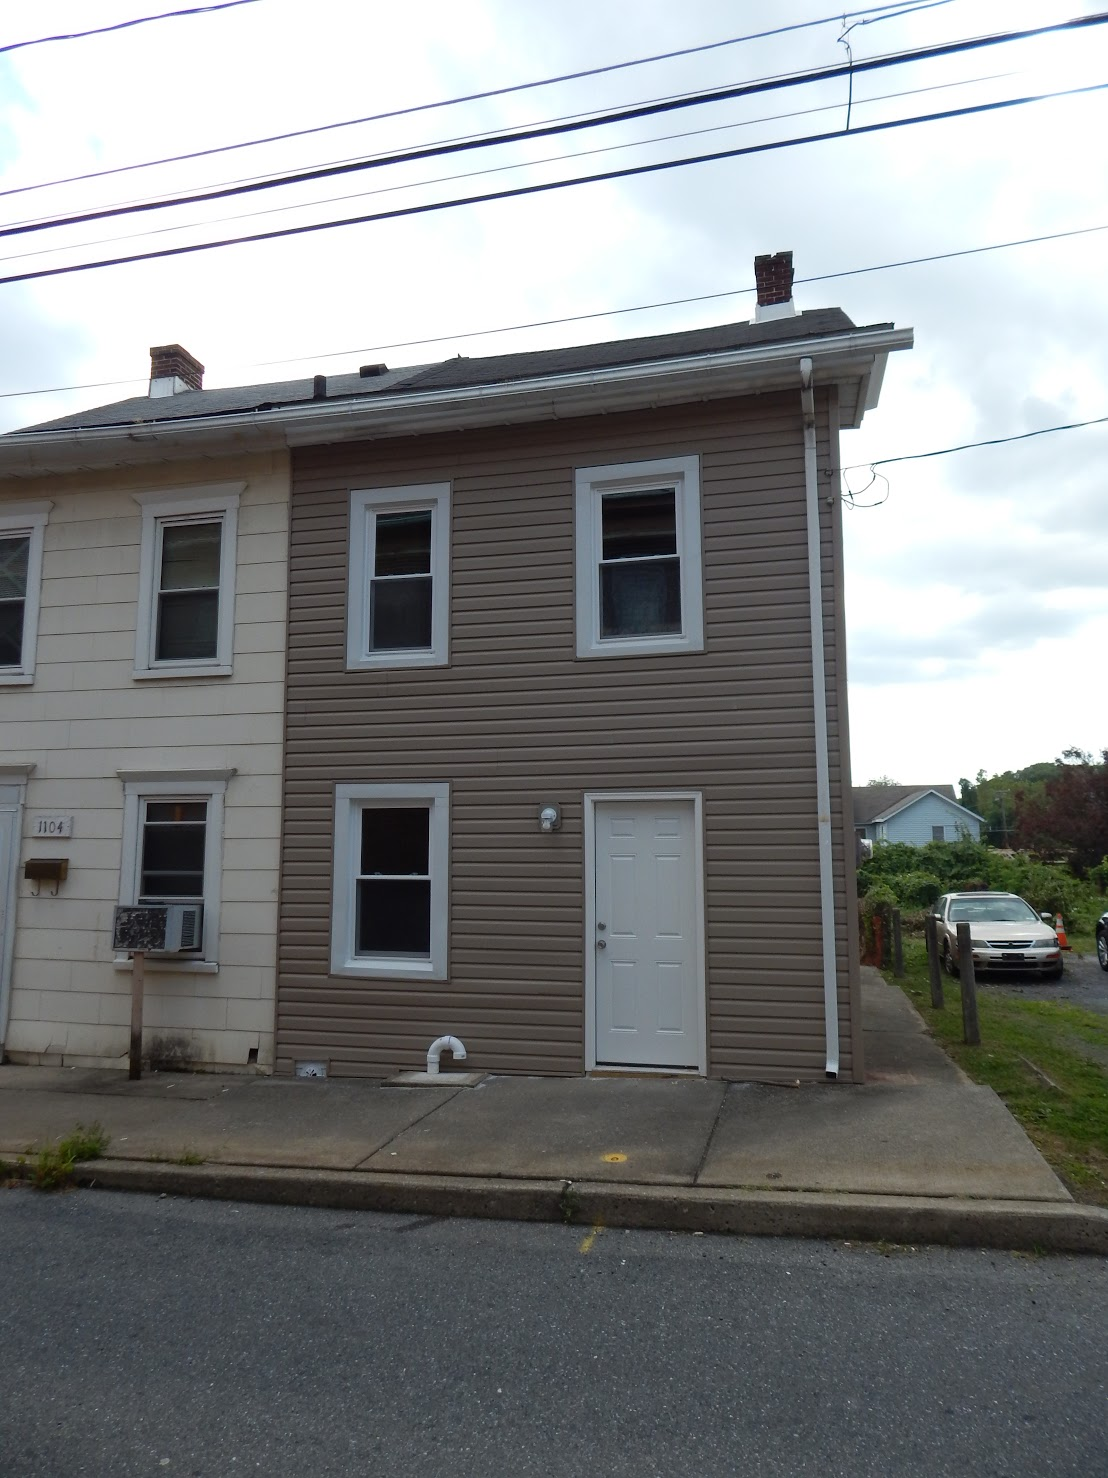 Catasauqua - 3 Beds 1 Bath $109,900